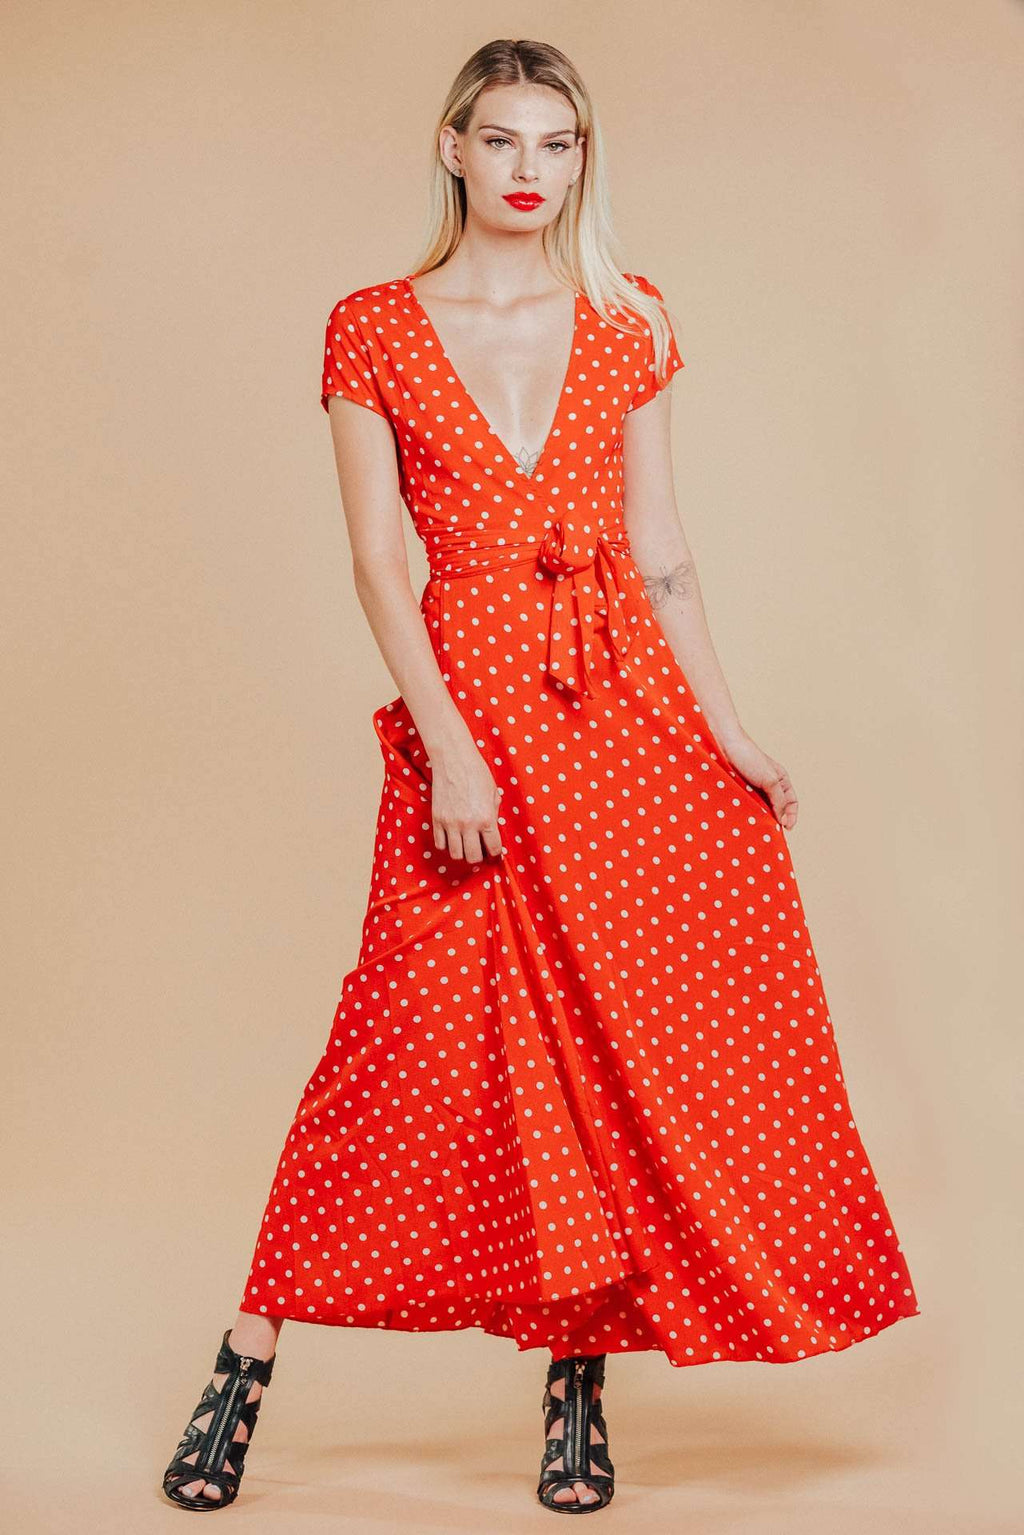 Alana Red Polka Dot Maxi Dress,Women - Apparel - Dresses